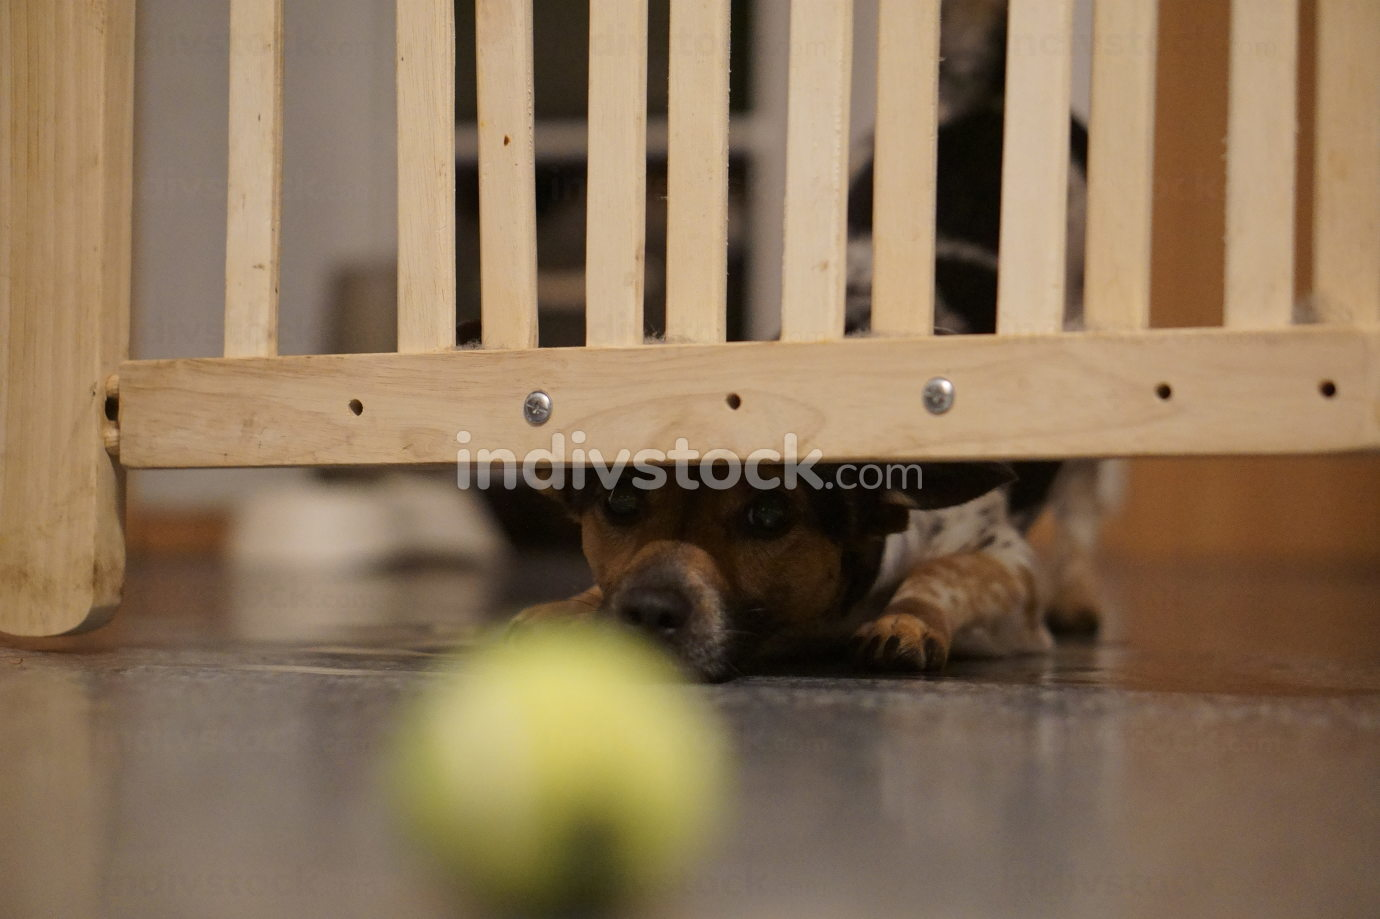 free download: small young dog indoor, looks under the barrier gate, Jack Russel